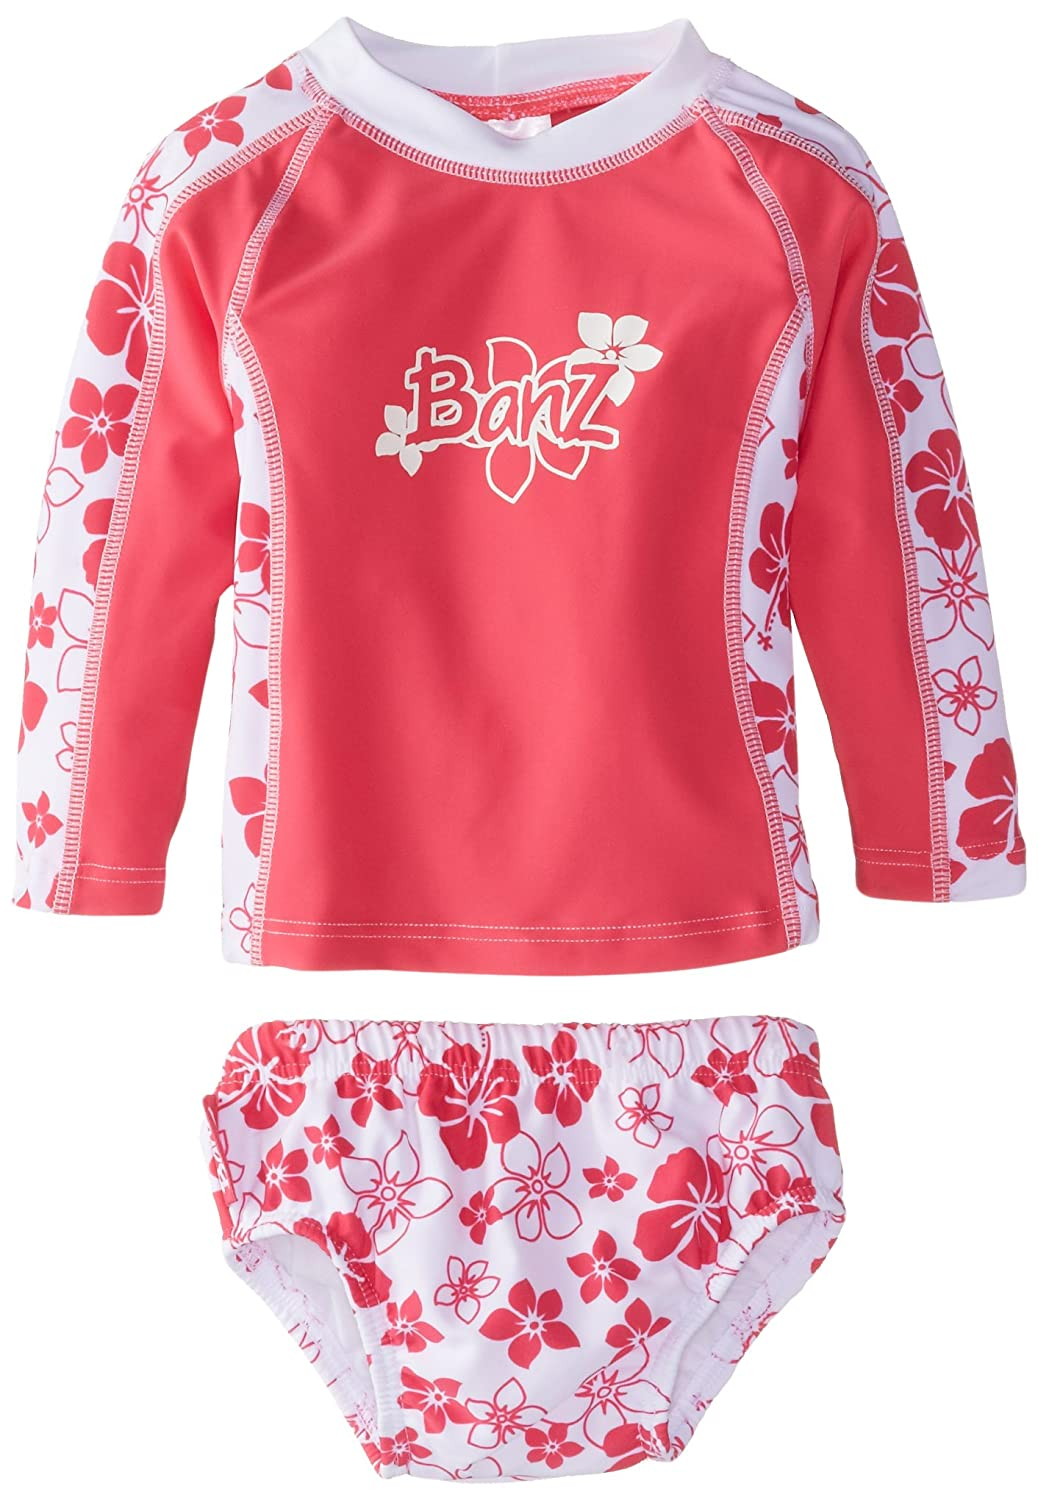 Baby Banz Baby Girls Long Sleeve Rash Guard and Swim Diaper Baby Banz Baby Apparel